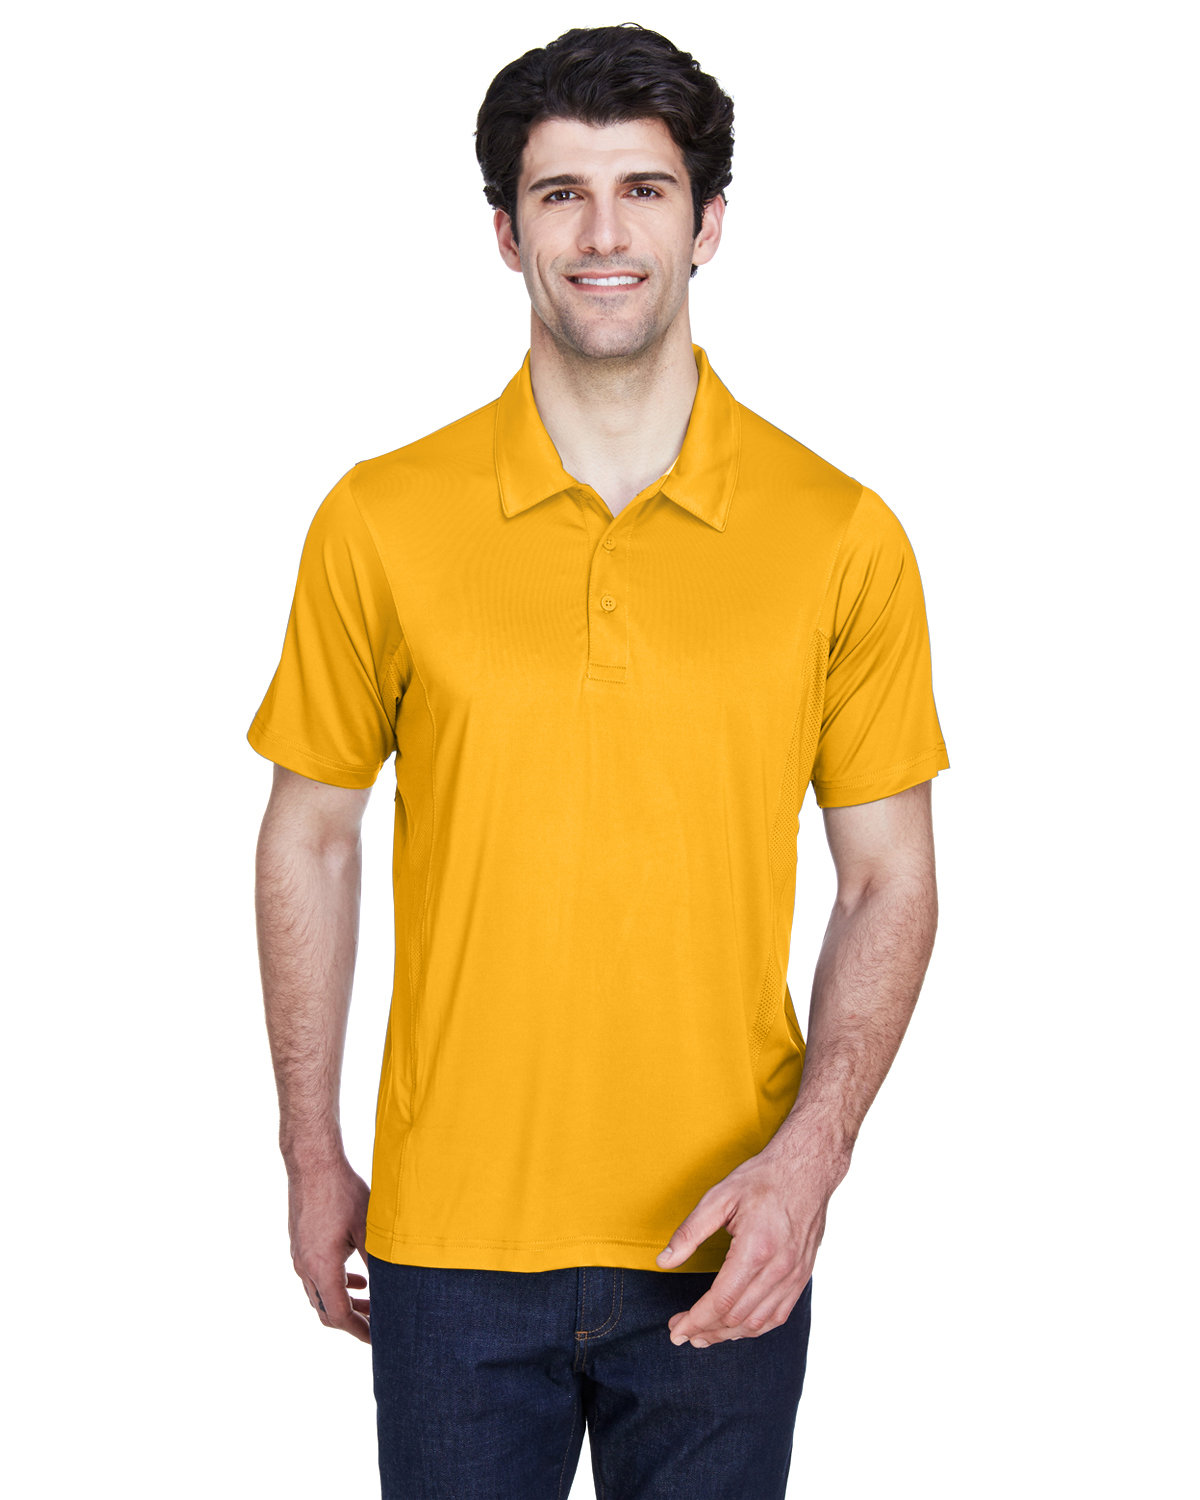 Team 365 Men's Charger Performance Polo SP ATHLETIC GOLD